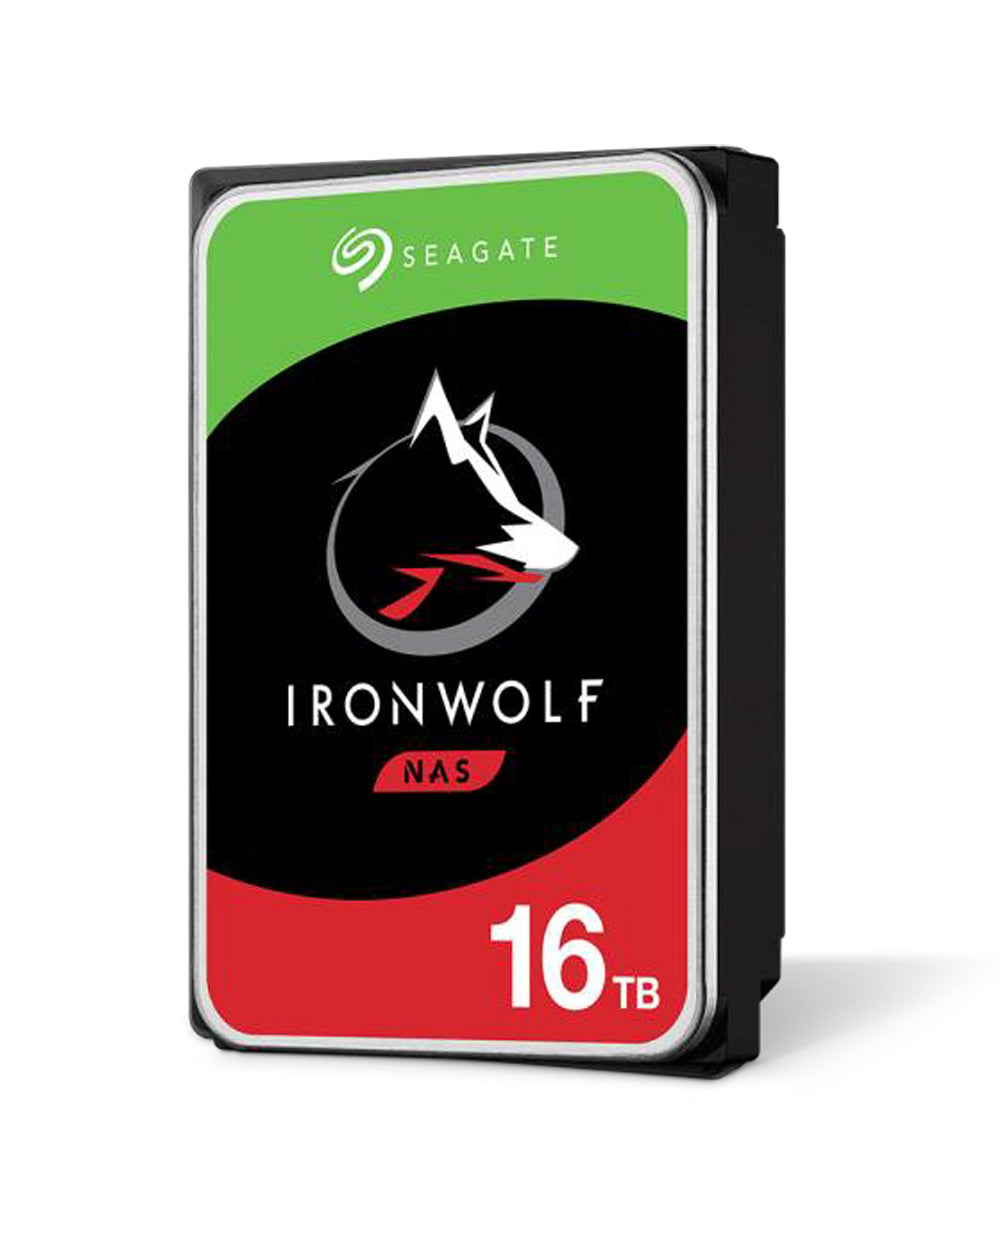 16TB - Seagate IronWolf SATA 256MB 7200RPM - ST16000VN001